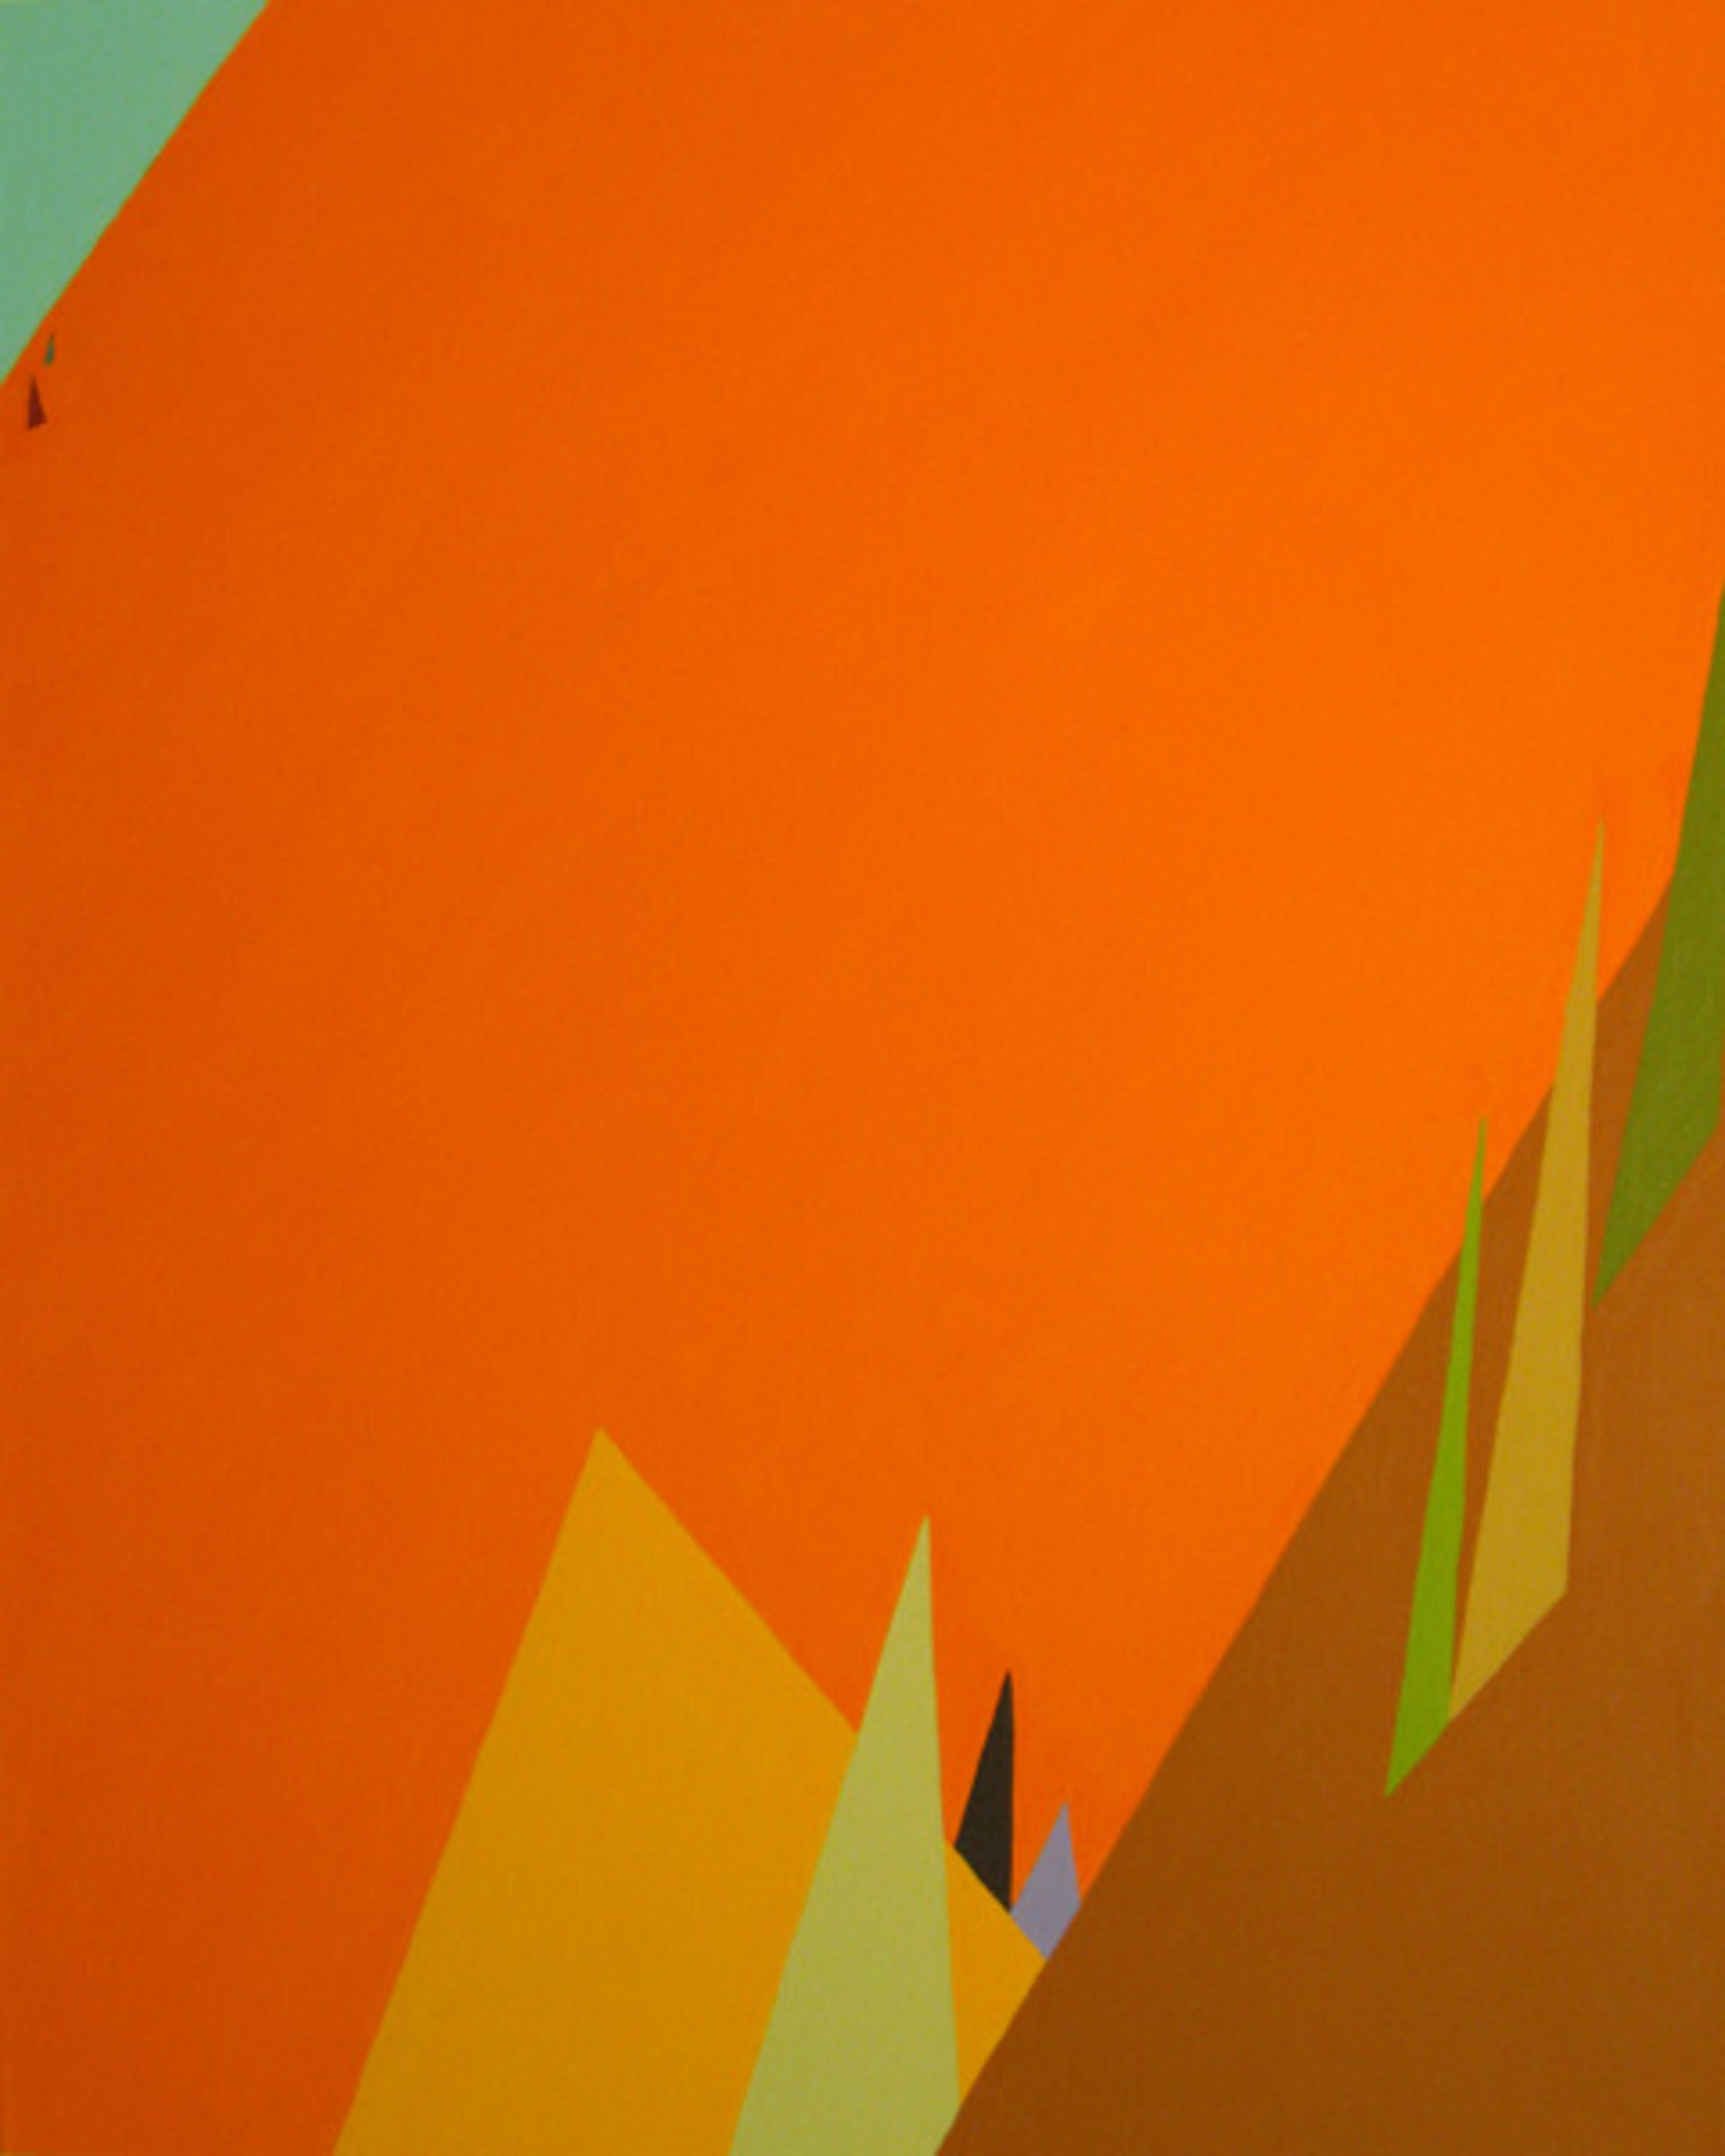 Patty Cateura, Mntns & Trees, 2010